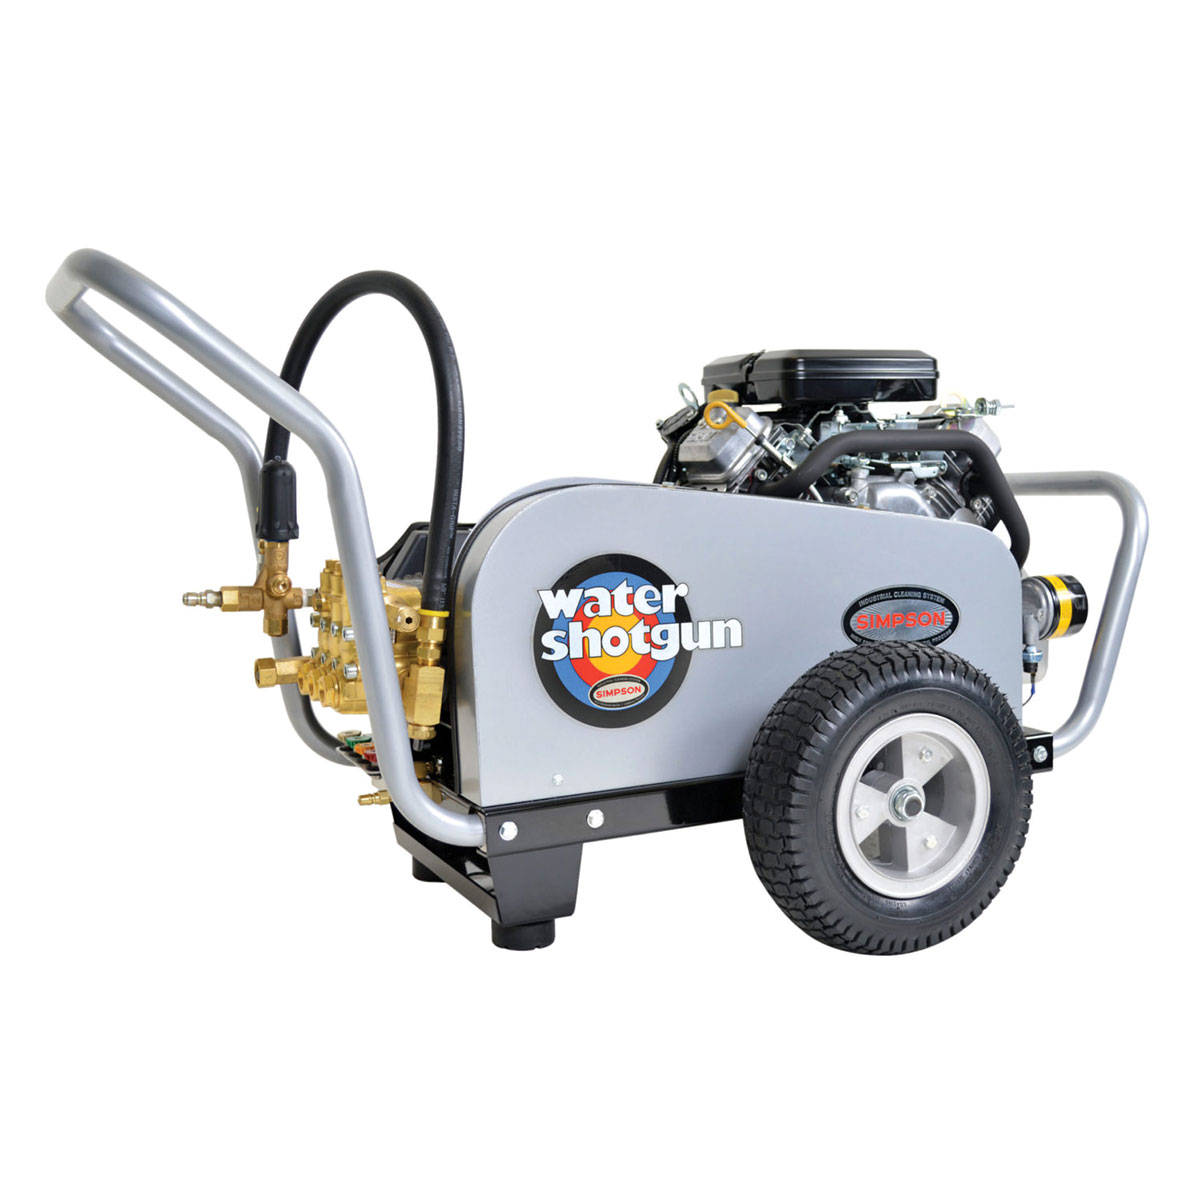 4000 PSI Water Shotgun Series - Industrial Belt Drive Pressure Washer with a Vanguard - Electric Start engine and a 50' hose - WS4050-V